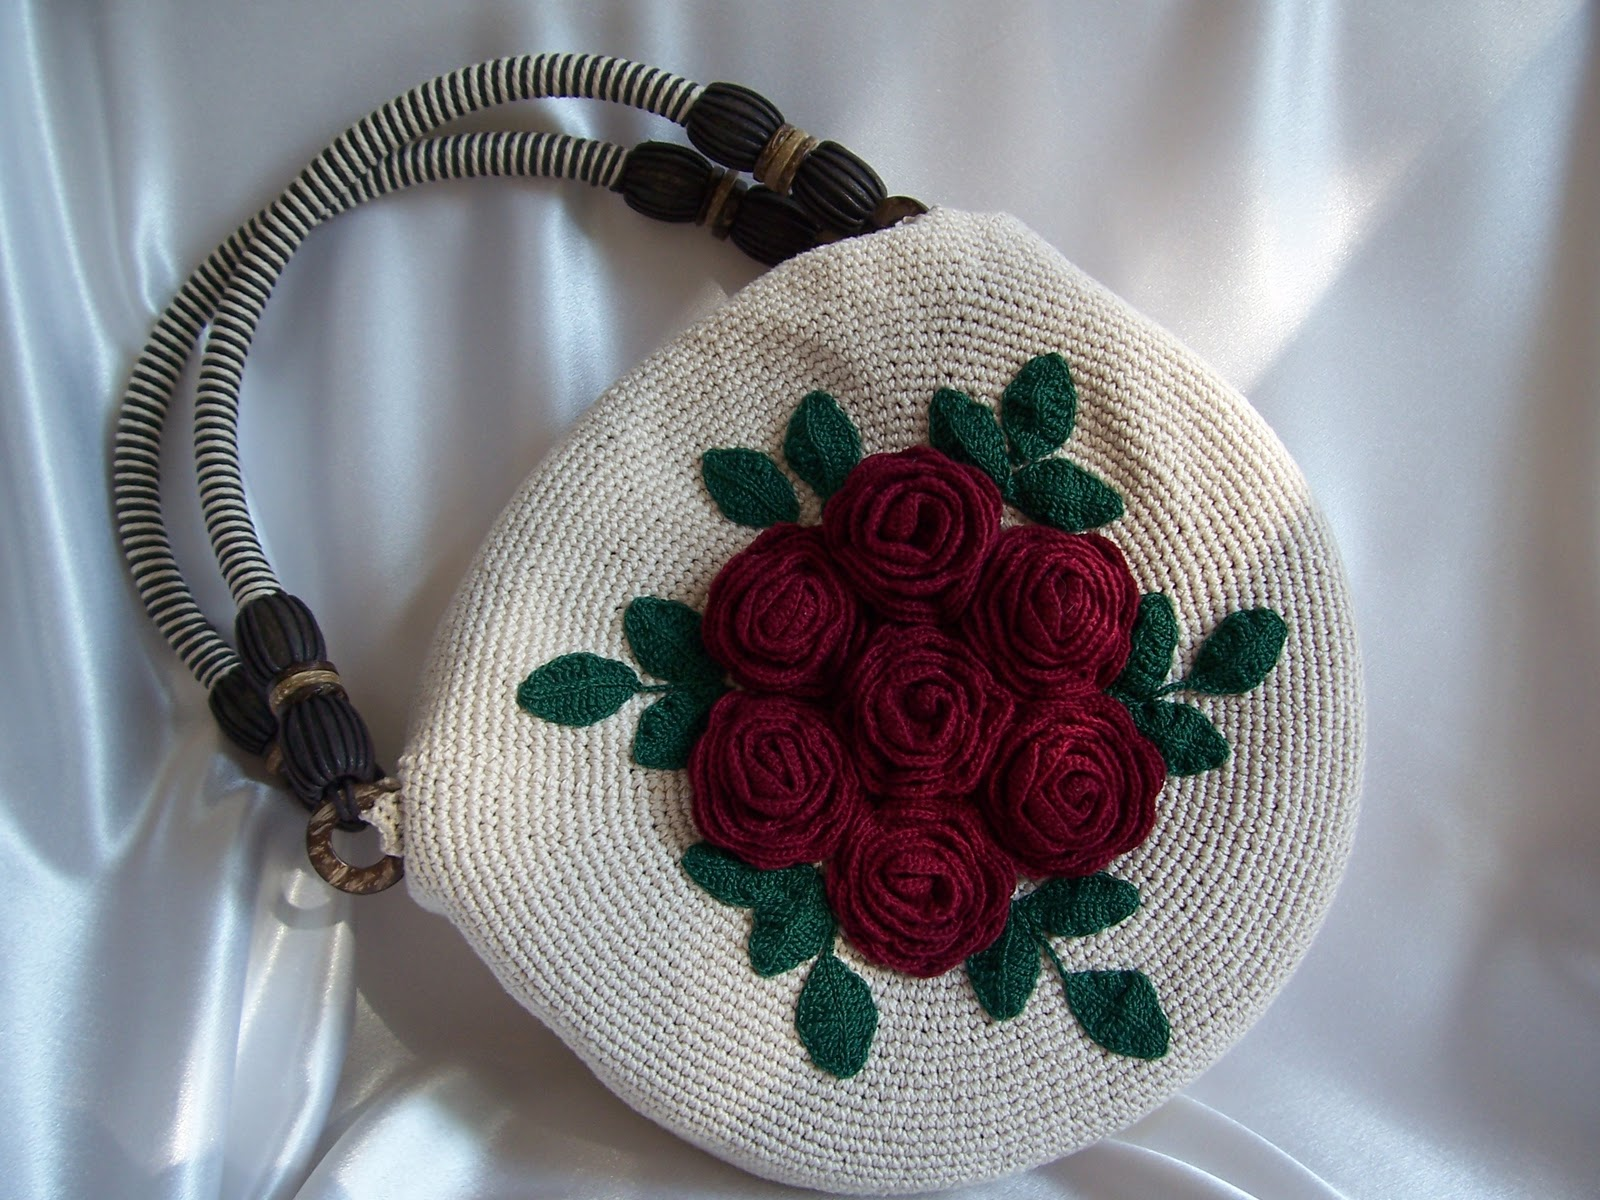 Outstanding Crochet: How to make a beautiful purse with flower ...